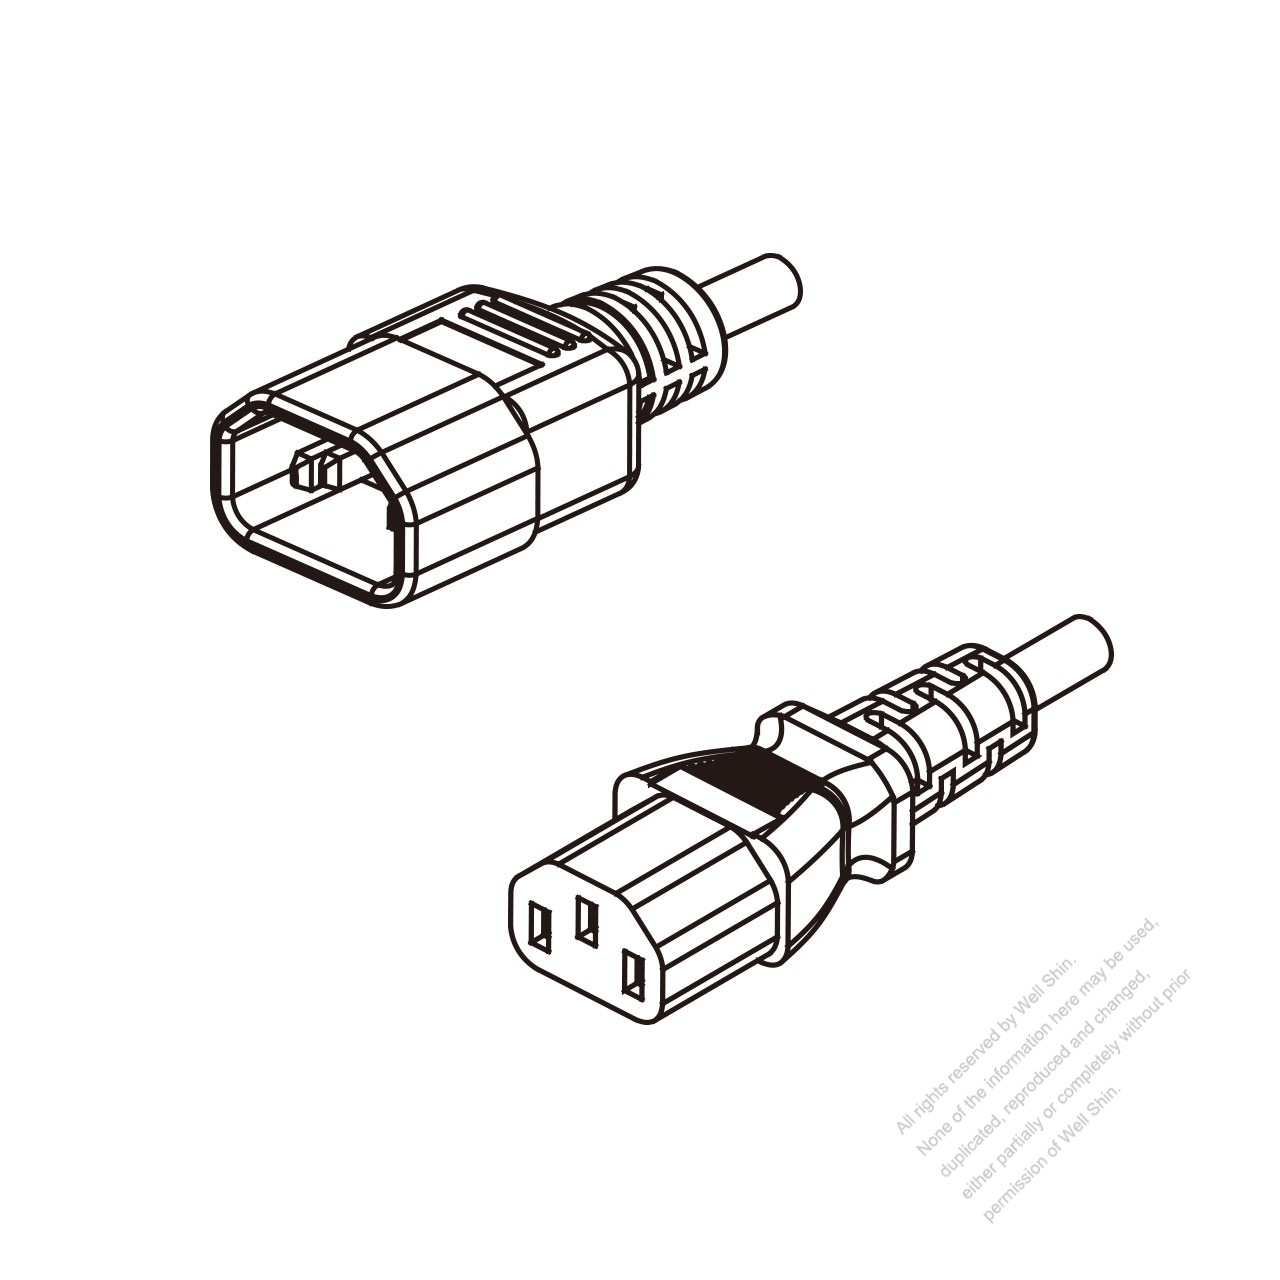 hight resolution of china 3 pin iec 320 sheet e plug to iec 320 c13 ac power cord